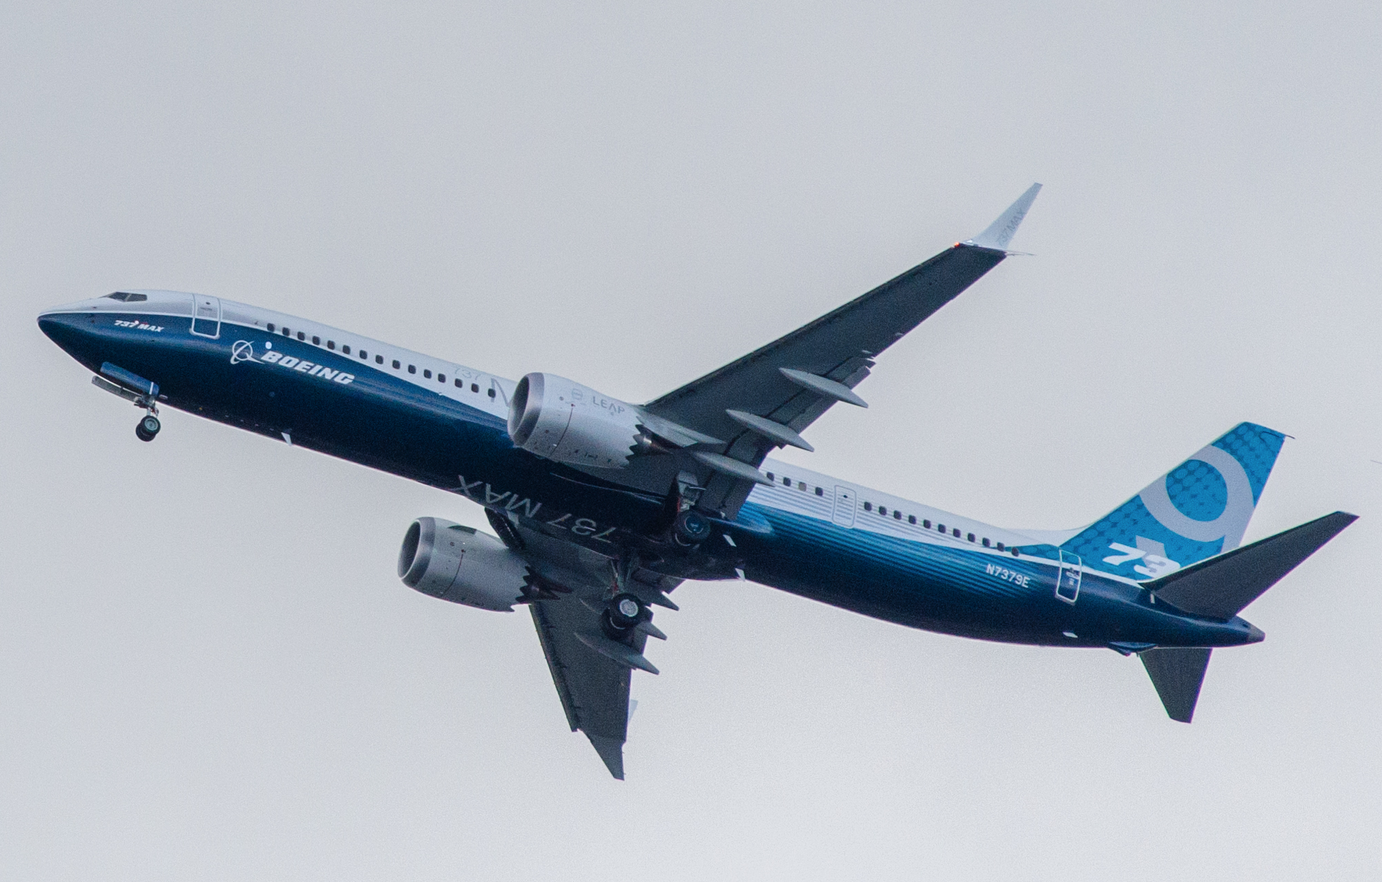 Pilots Of The Ethiopian 737 MAX Crash Followed Recommended Procedures, Taken by: Jeff Hitchcock,